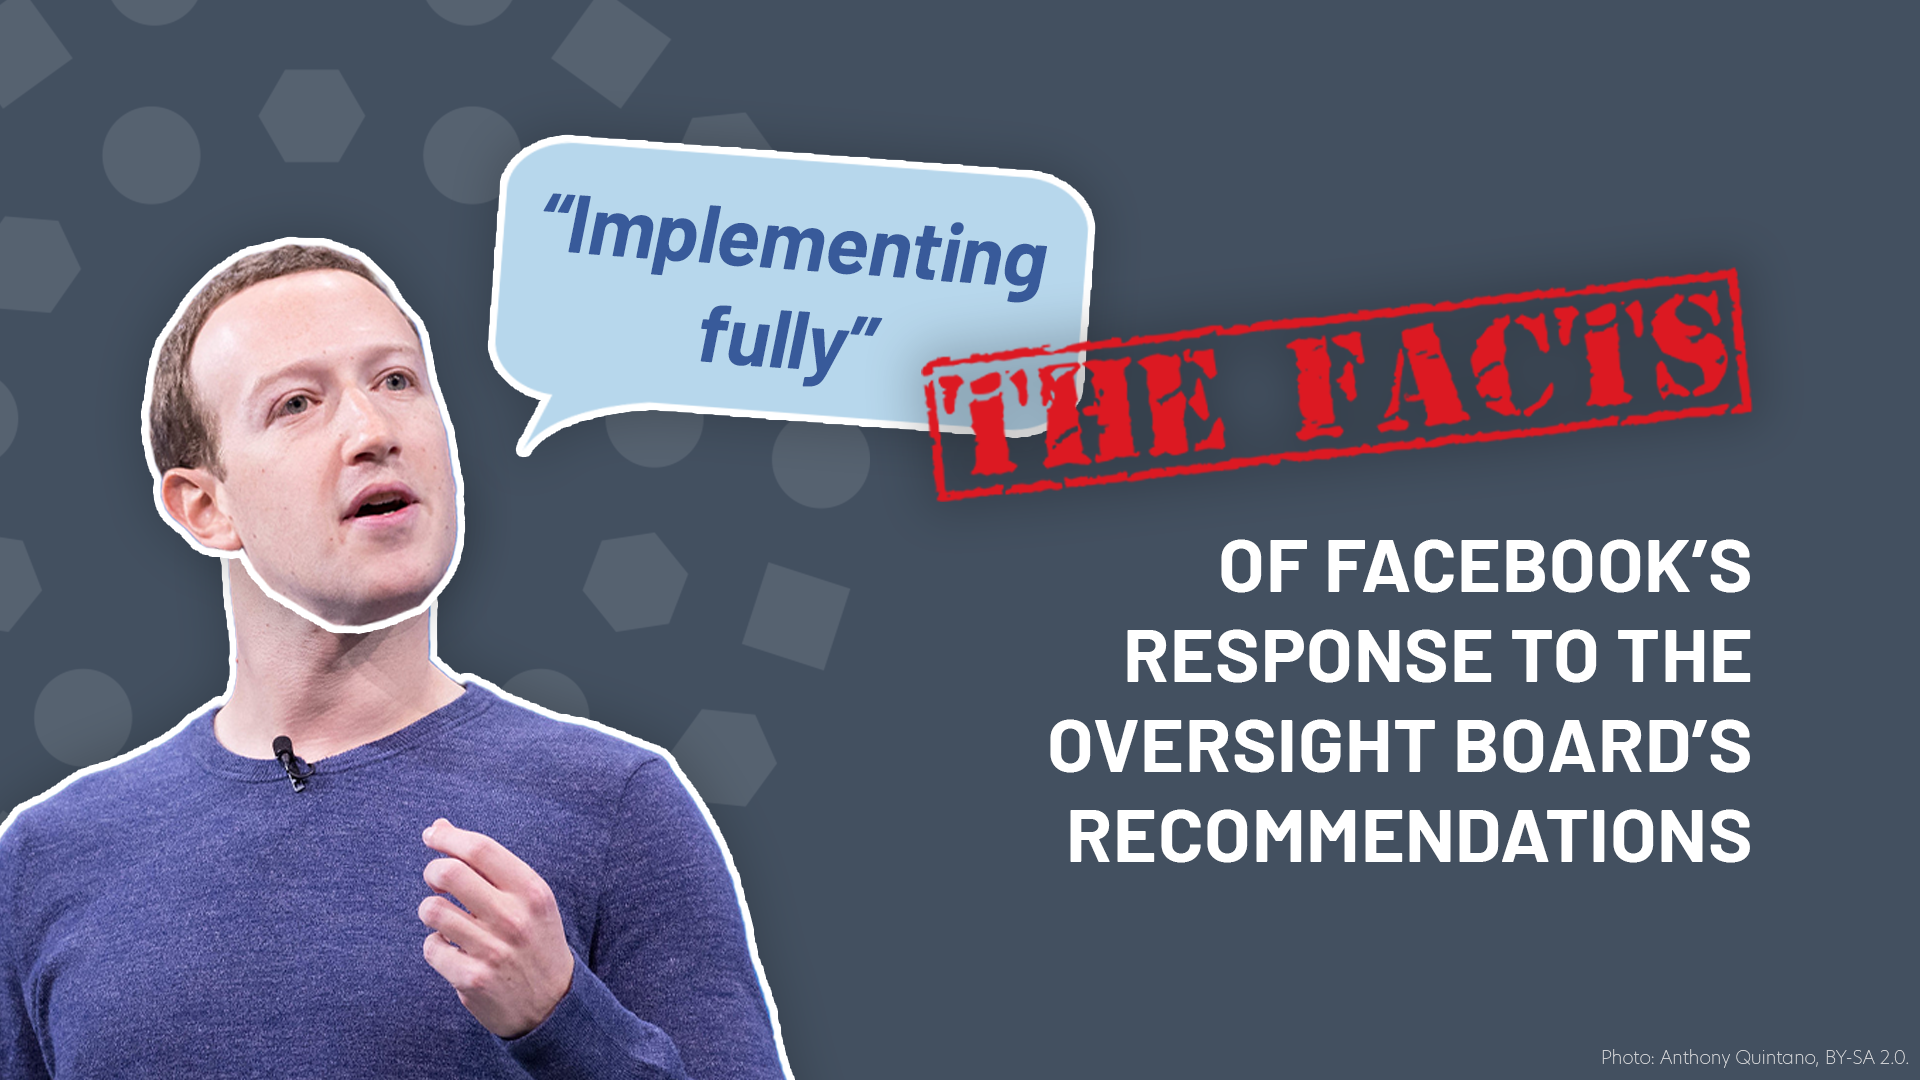 Facebook's responses to the Oversight Board are a sham